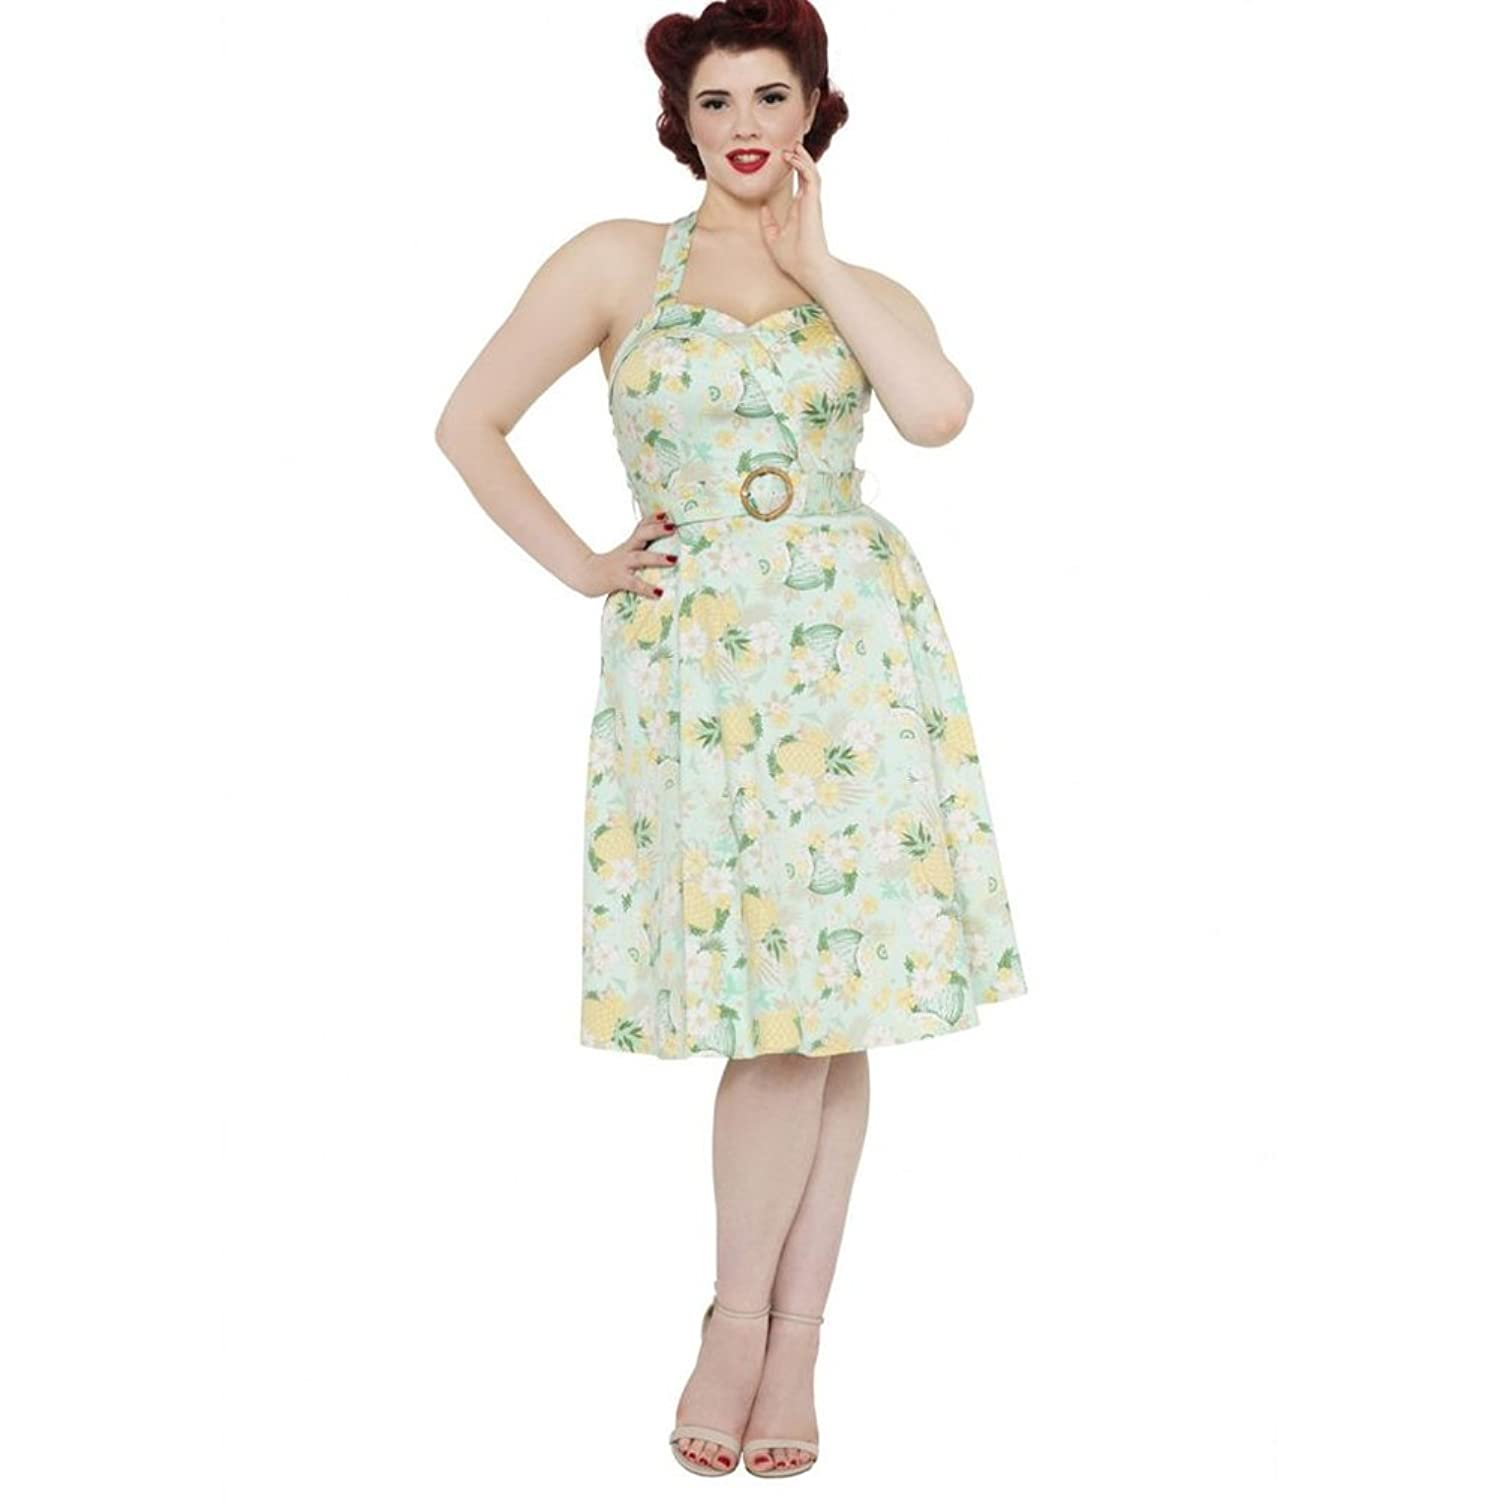 Retro Tiki Dress – Tropical, Hawaiian Dresses Voodoo Vixen Womens Layla Tropical Dream Flare Dress Green $75.70 AT vintagedancer.com